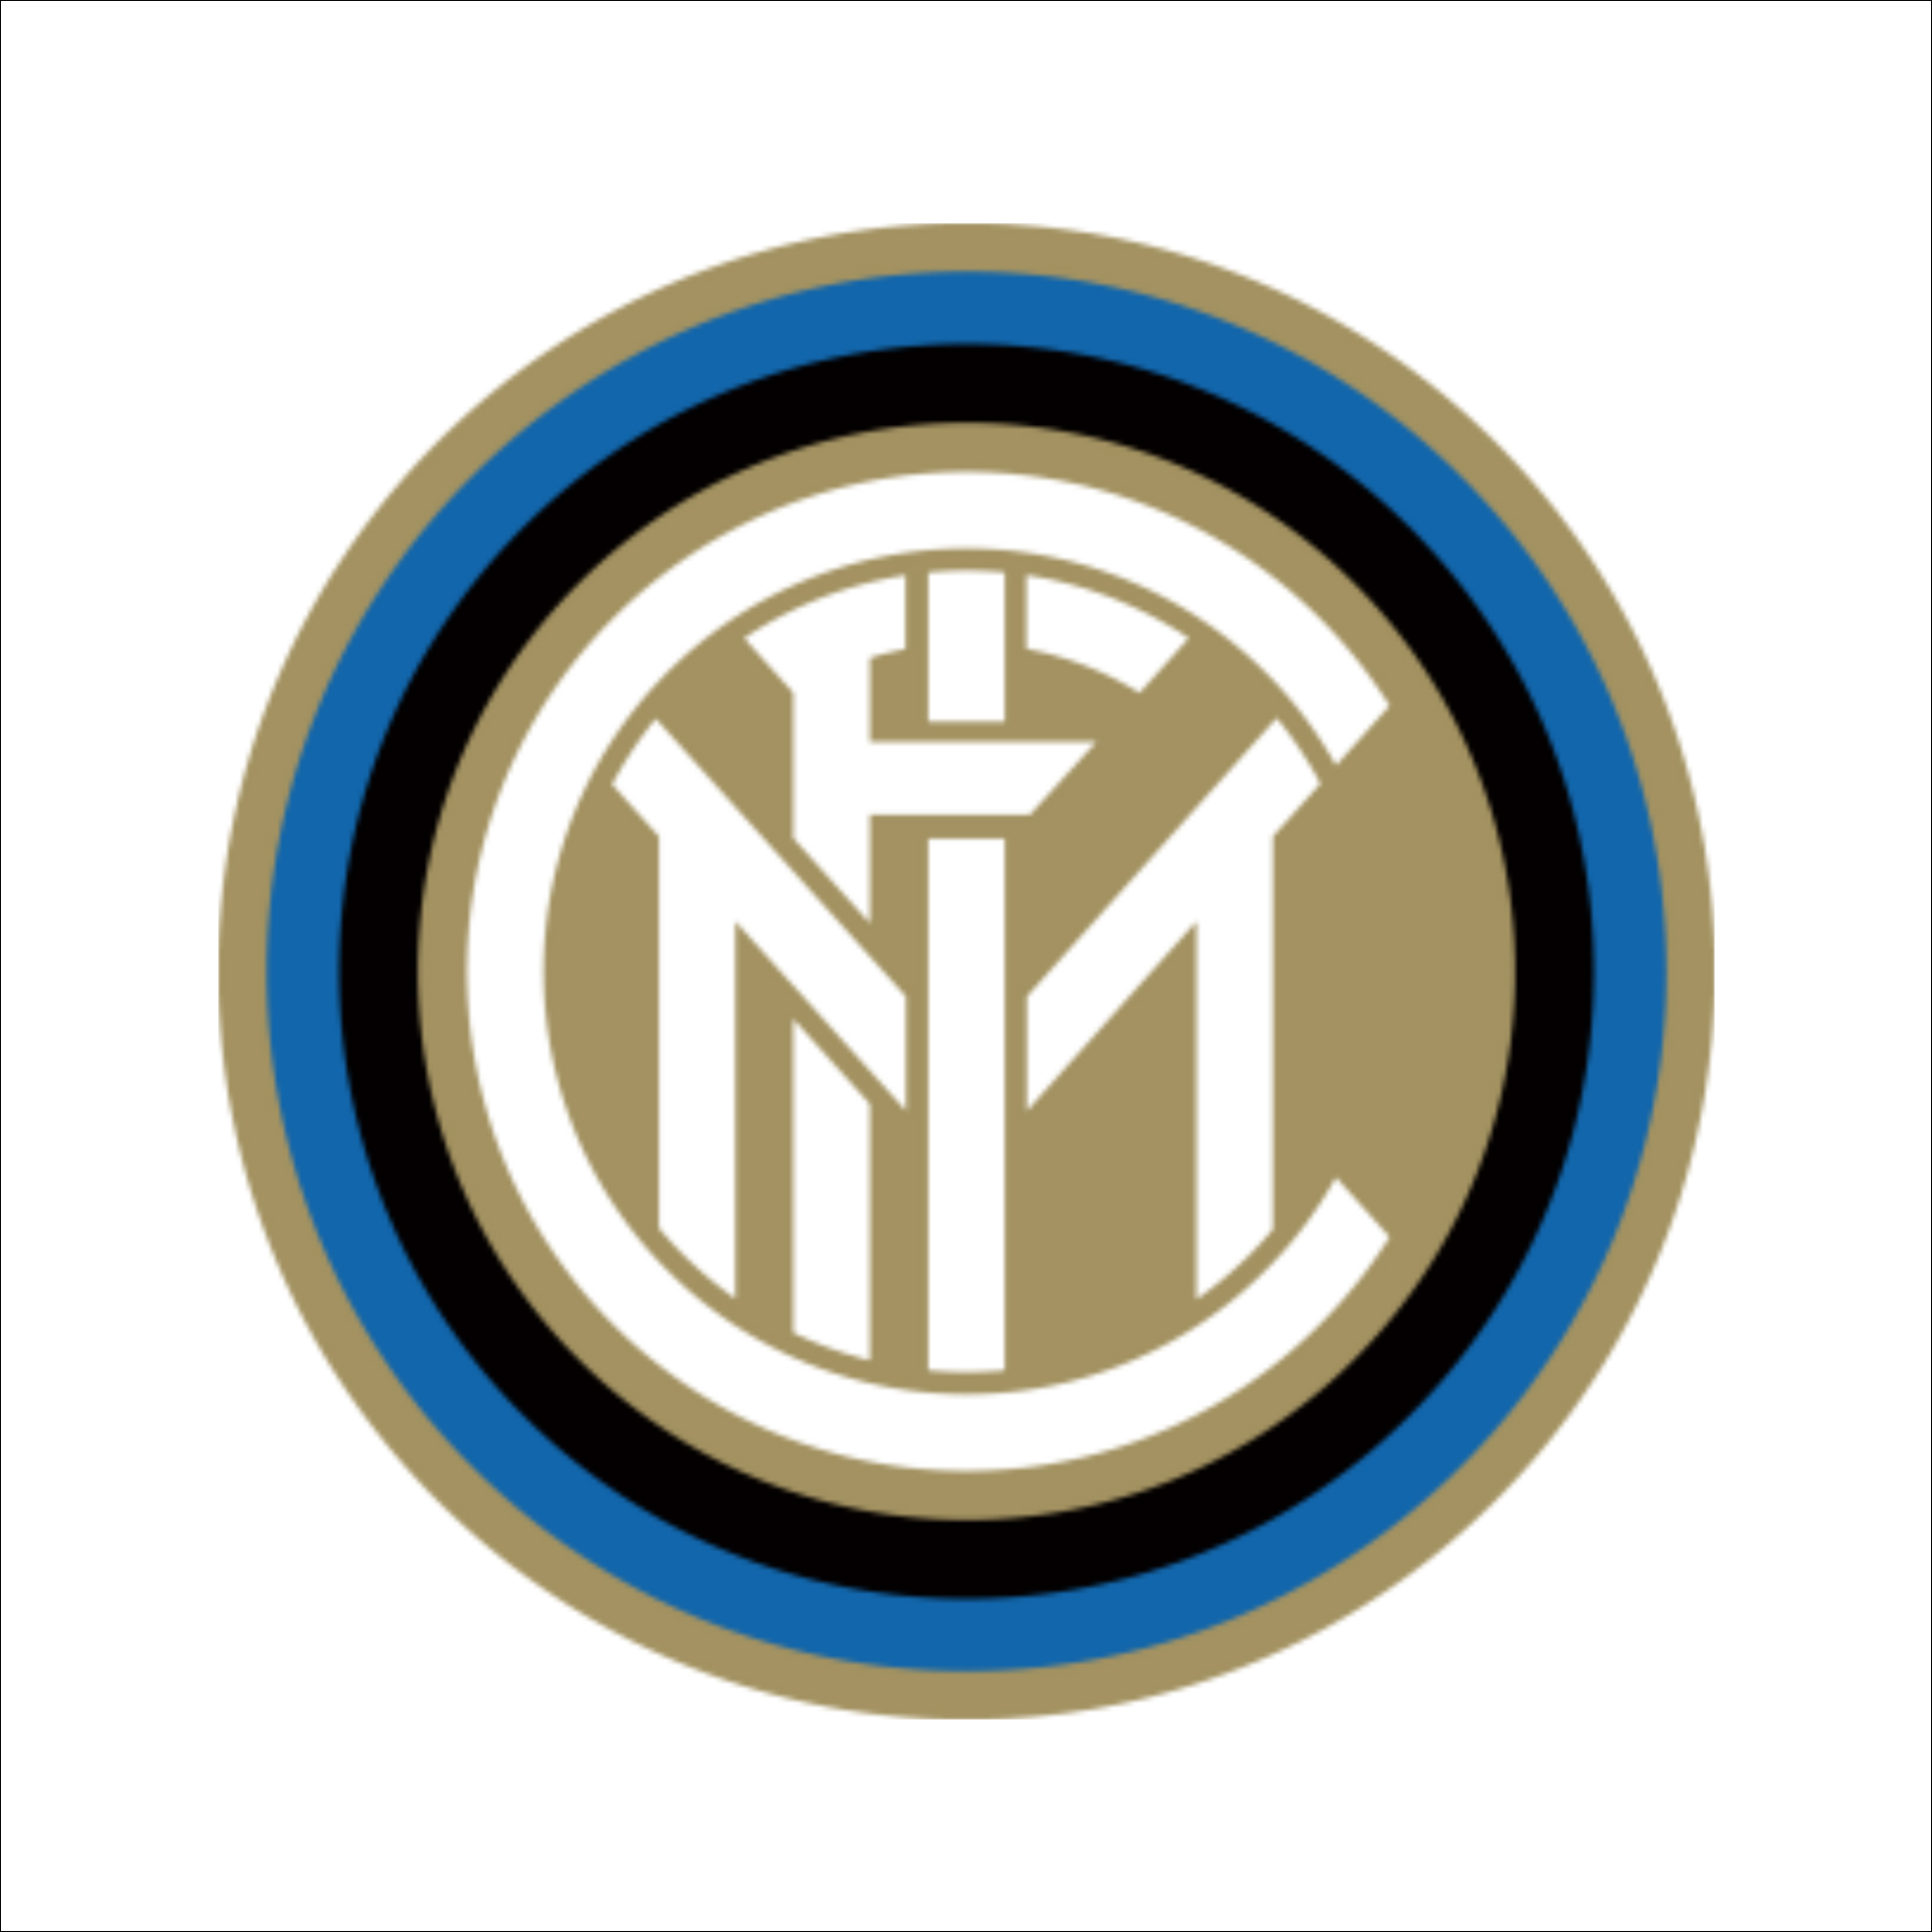 International Milan Football Club